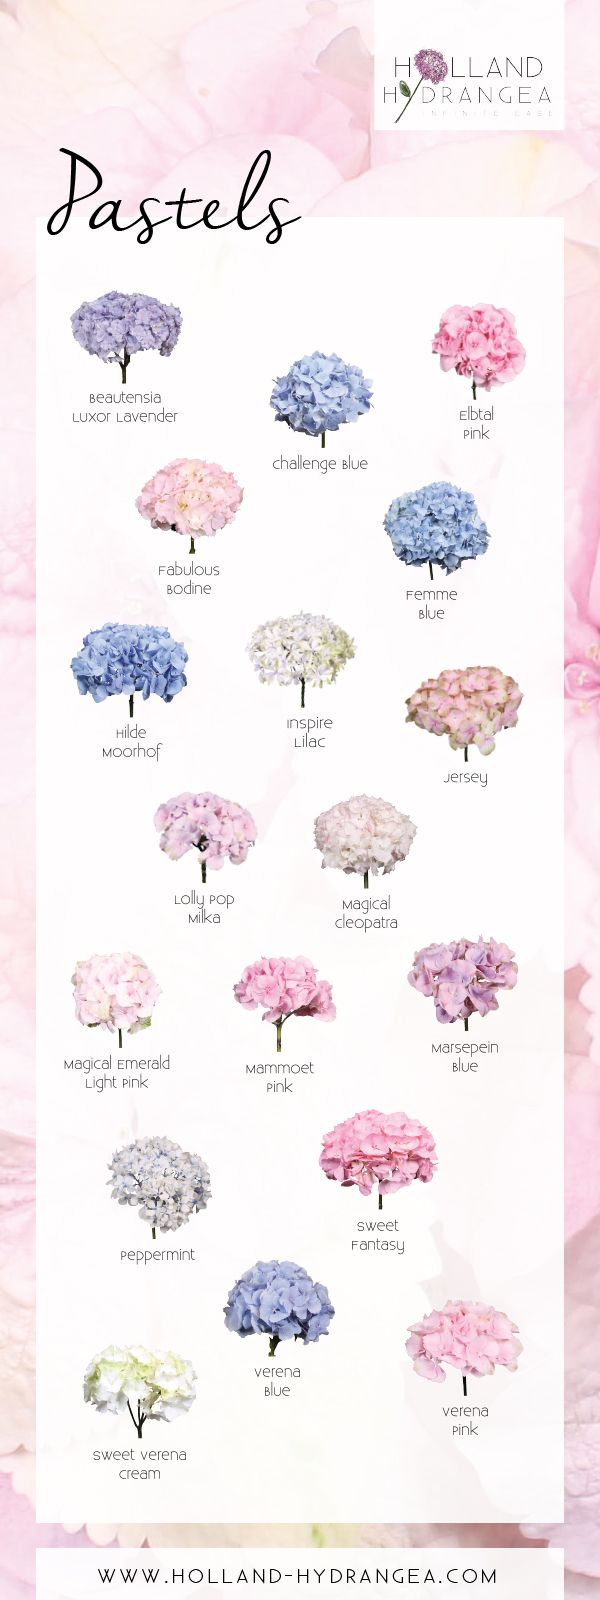 Beautiful Pastels |  Holland Hydrangea: share the beauty of Dutch Hydrangea! | www.holland-hydrangea.com